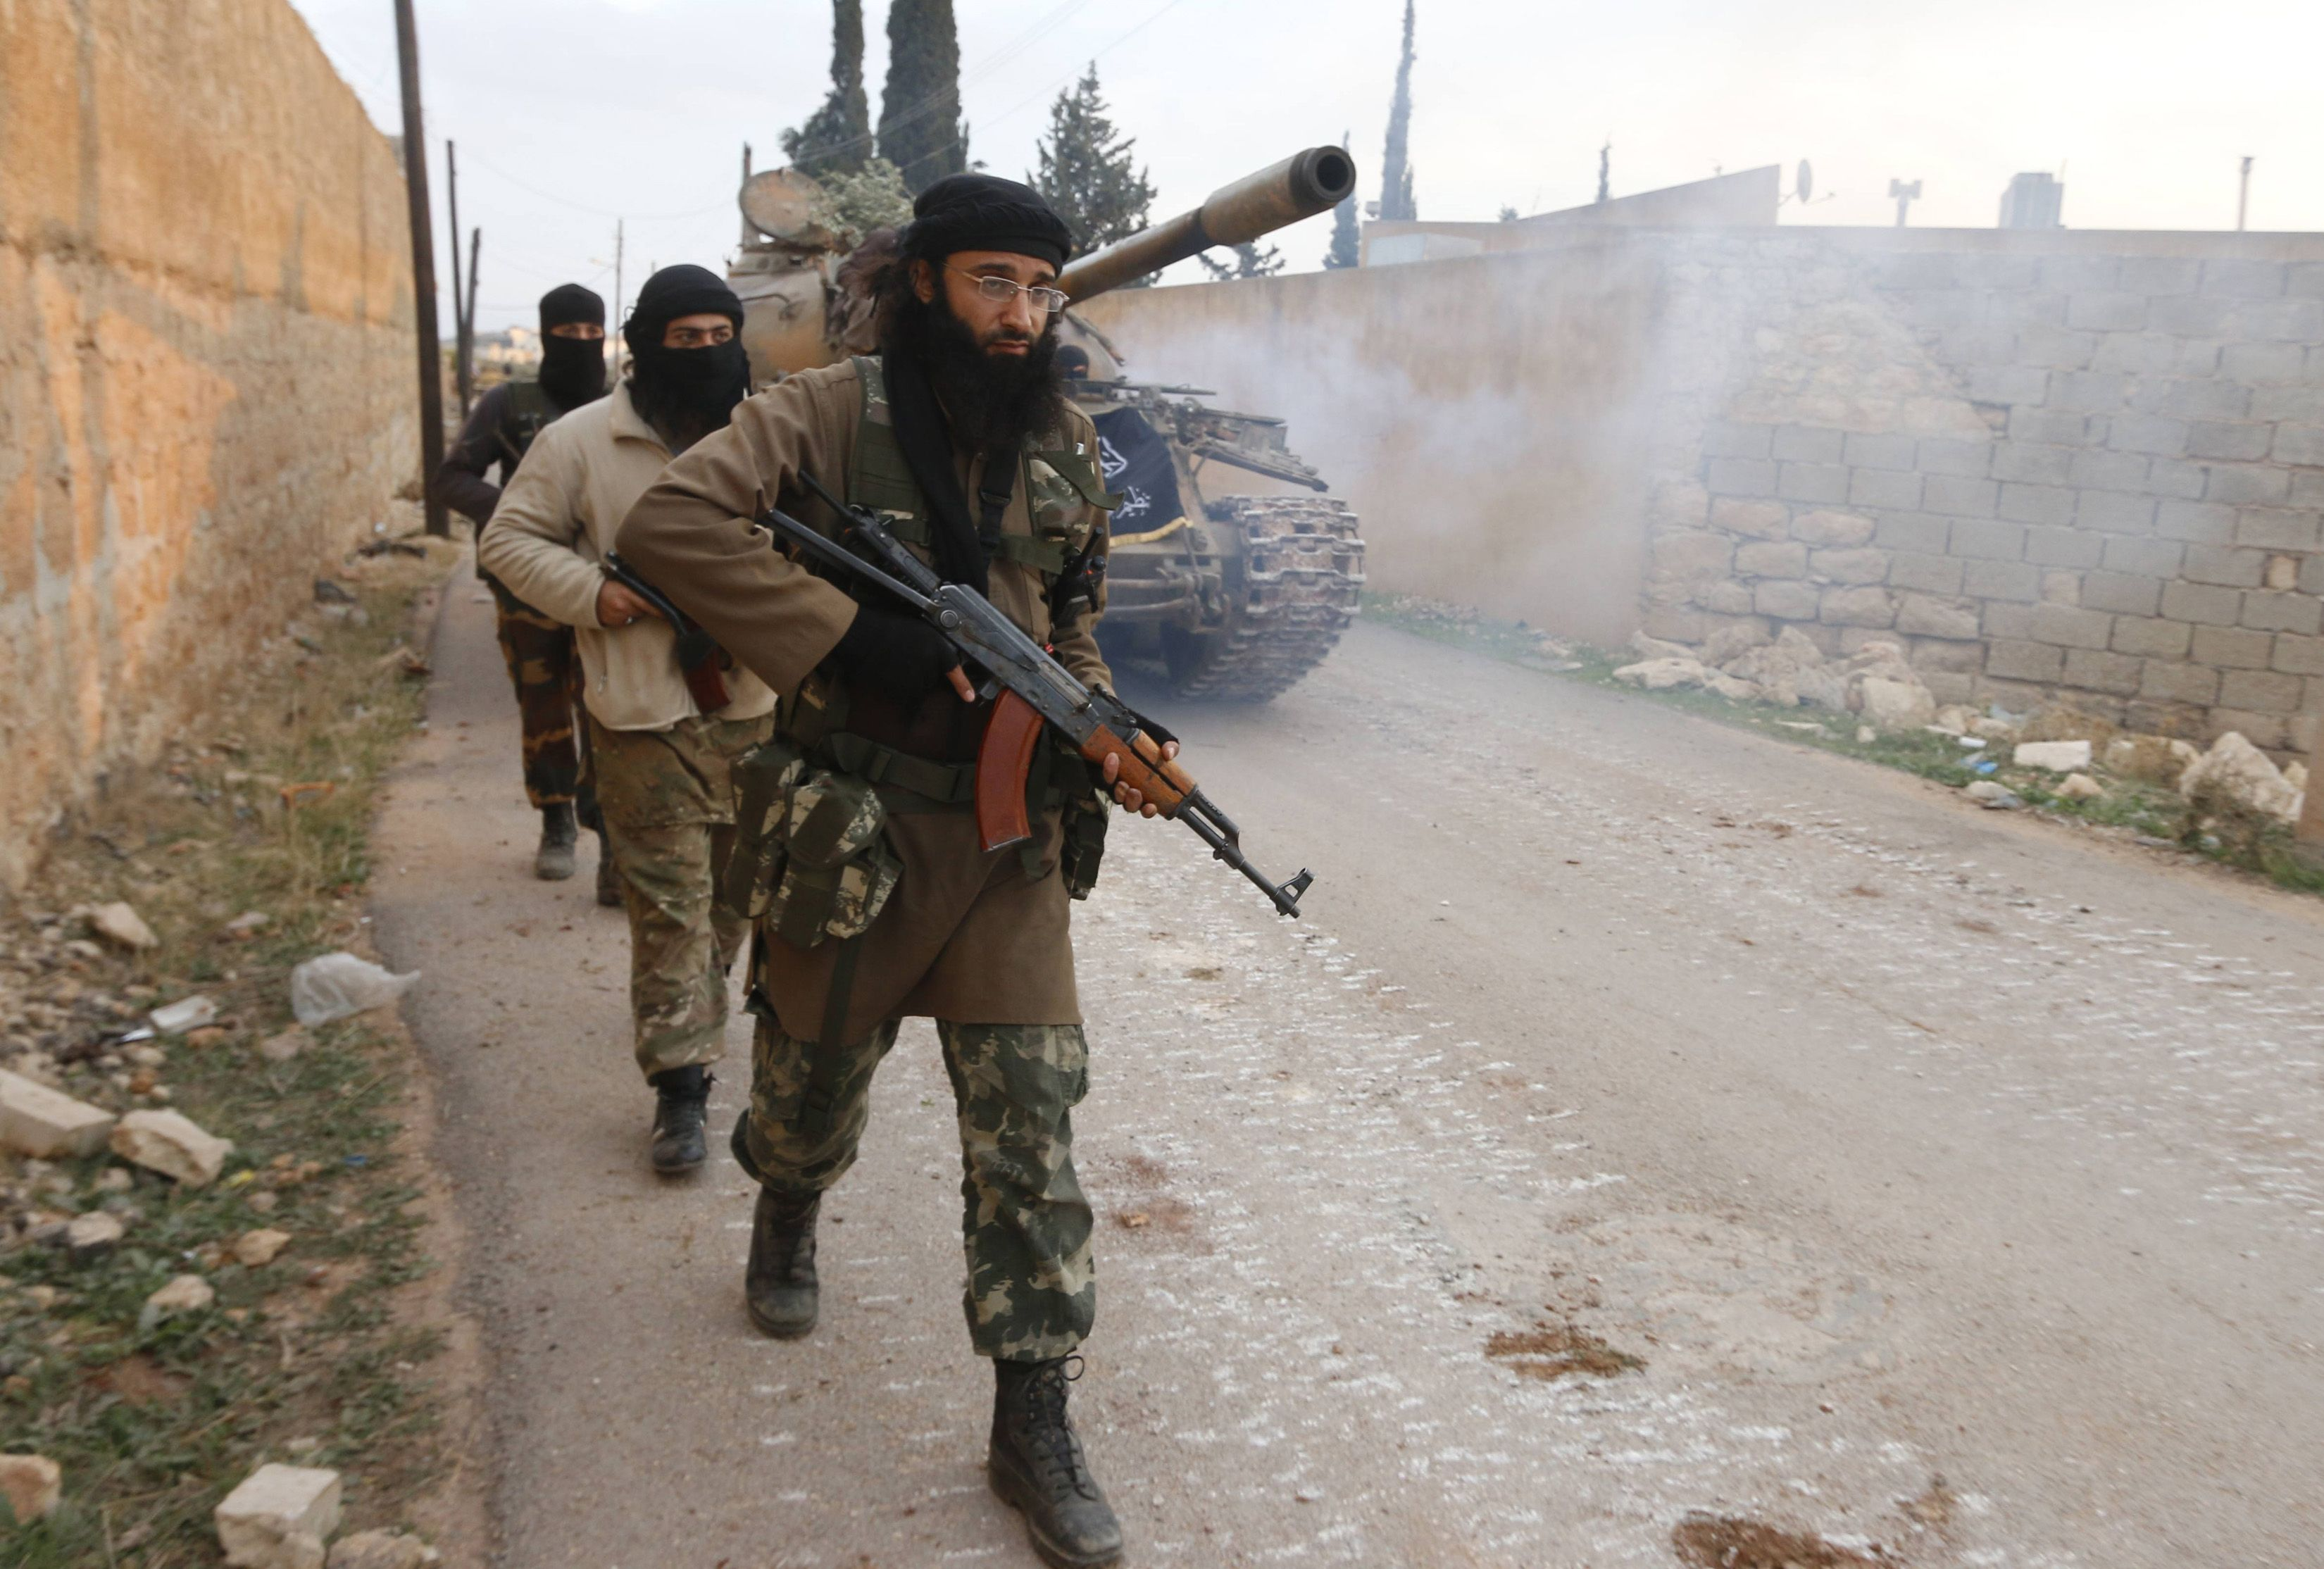 Members of al Qaeda's Nusra Front carry their weapons as they walk near al-Zahra village, north of Aleppo city, November 25, 2014. Members of al Qaeda's Nusra Front and other Sunni Islamists seized an area south of the Shi'ite Muslim village in north Syria on Sunday after clashes with pro-government fighters, opposition activists said. The insurgents advanced overnight on al-Zahra, north of Aleppo city, seizing territory to the south and also trying to take land to the east in an attempt to capture the village, the Britain-based Syrian Observatory for Human Rights said.  Picture taken November 25, 2014. REUTERS/Hosam Katan    (SYRIA - Tags: POLITICS CIVIL UNREST CONFLICT)